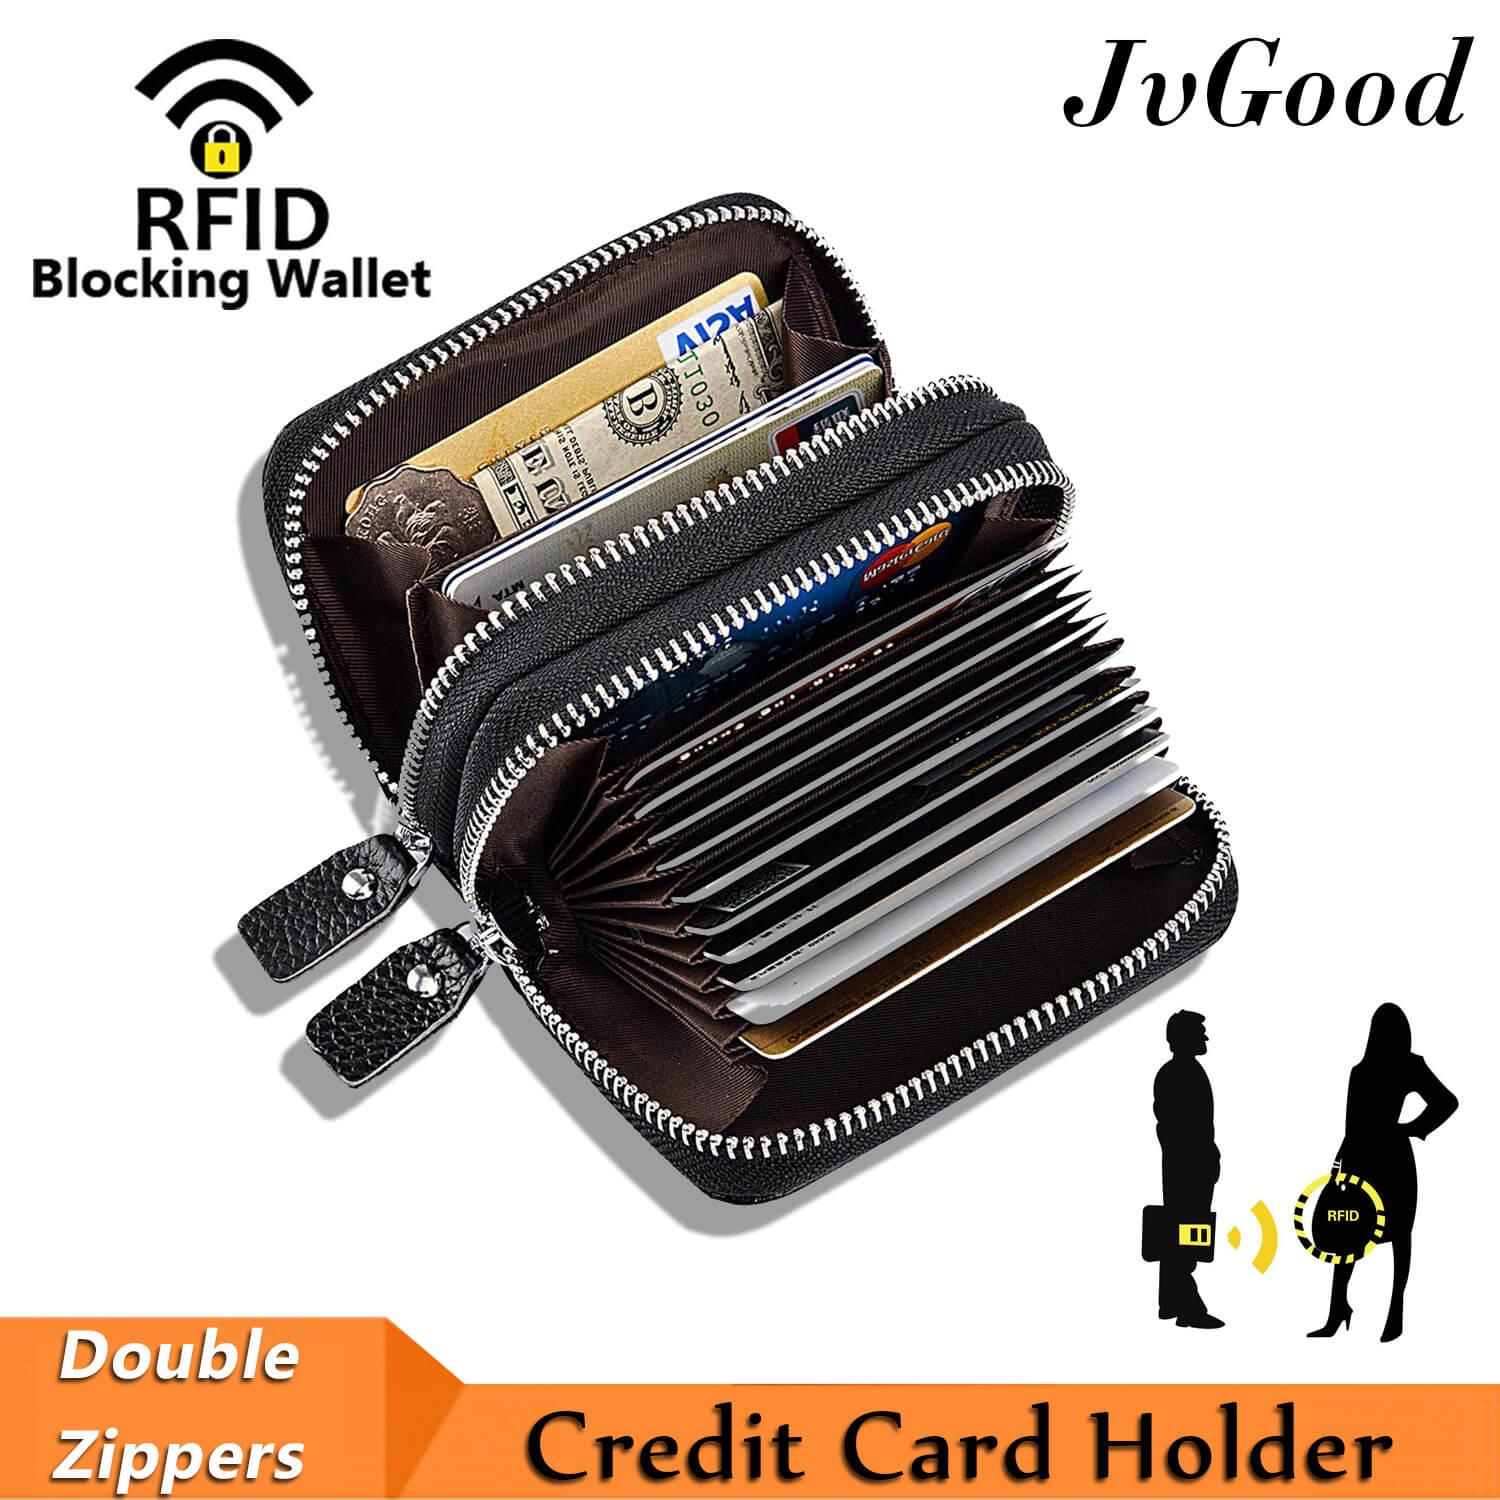 JvGood RFID Blocking Credit Card Holder, Genuine Leather Credit Card Wallet with Double Zipper Small Pocket Wallet Spacious Accordion Wallets